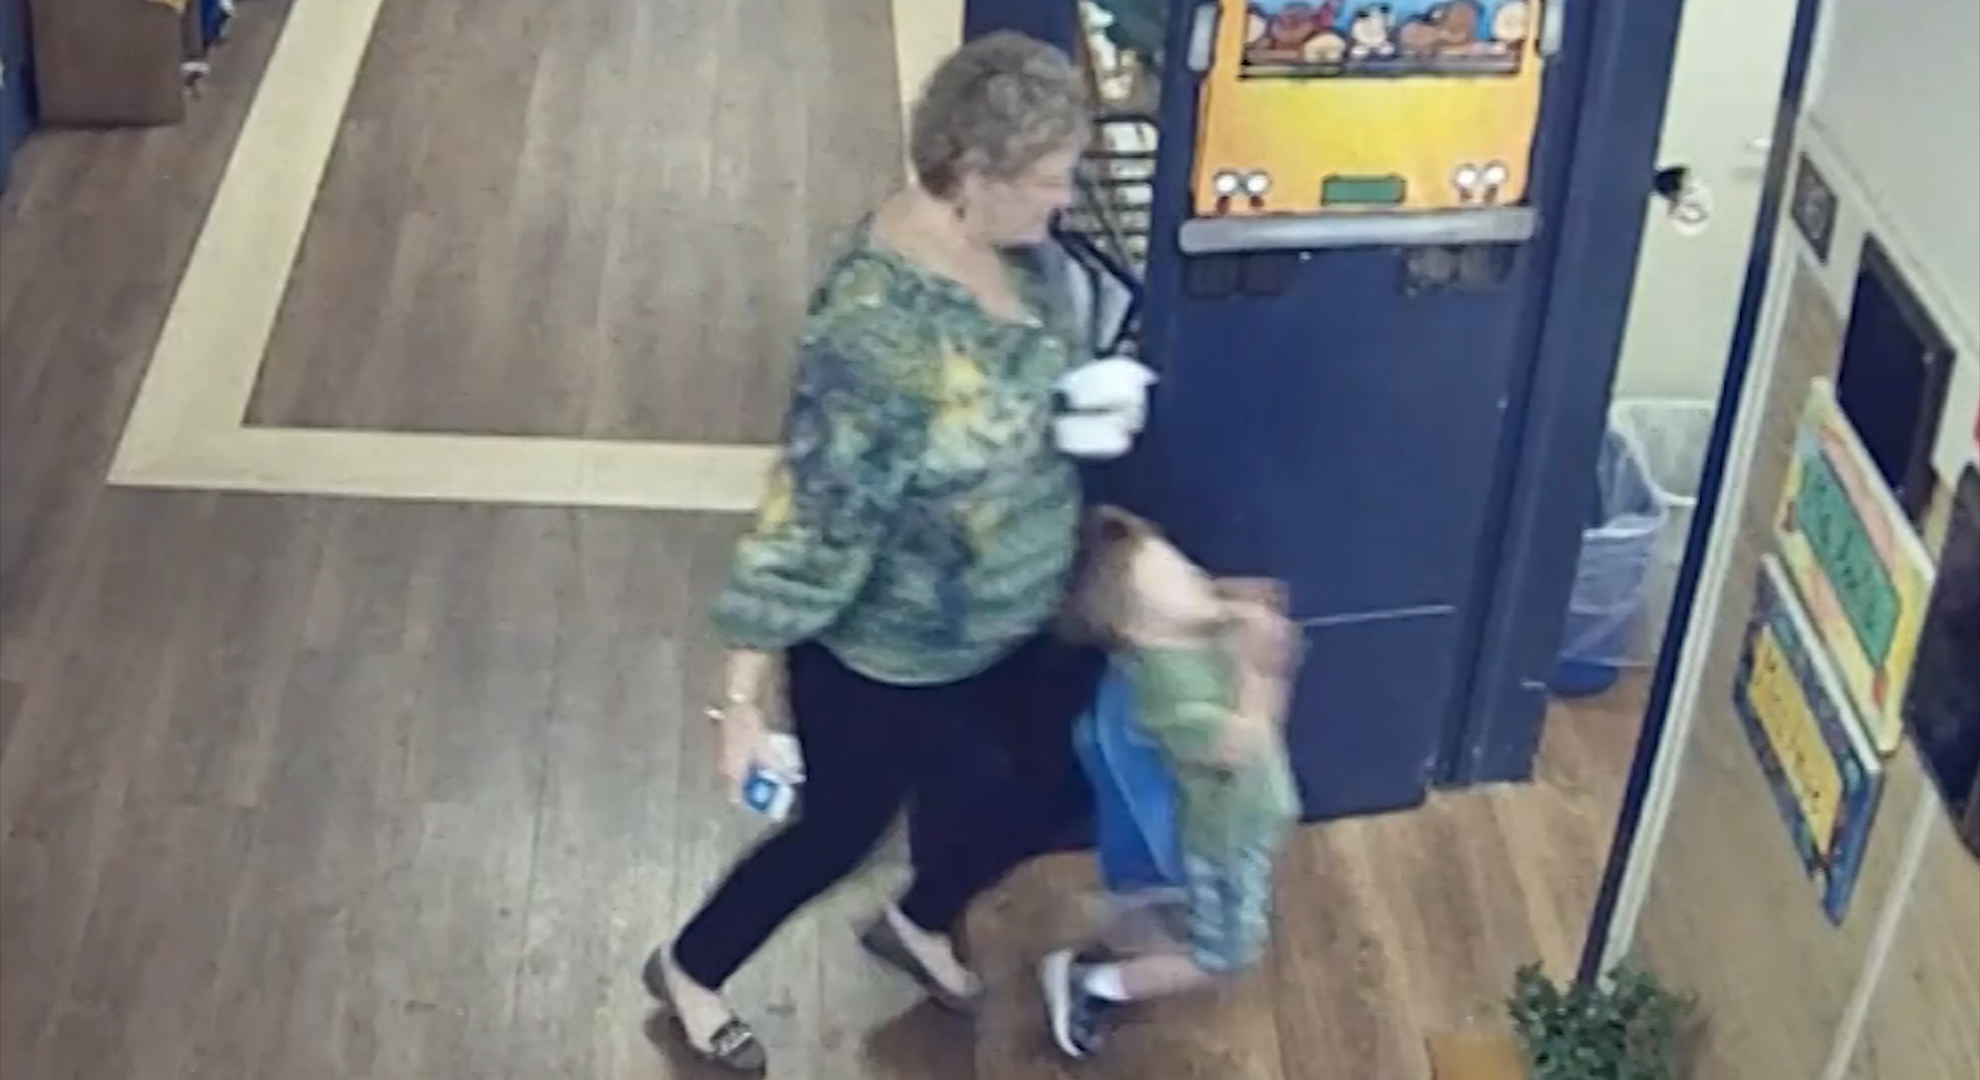 How To Catch Falling Son >> Teacher Arrested After Knocking Over Child Cnn Video